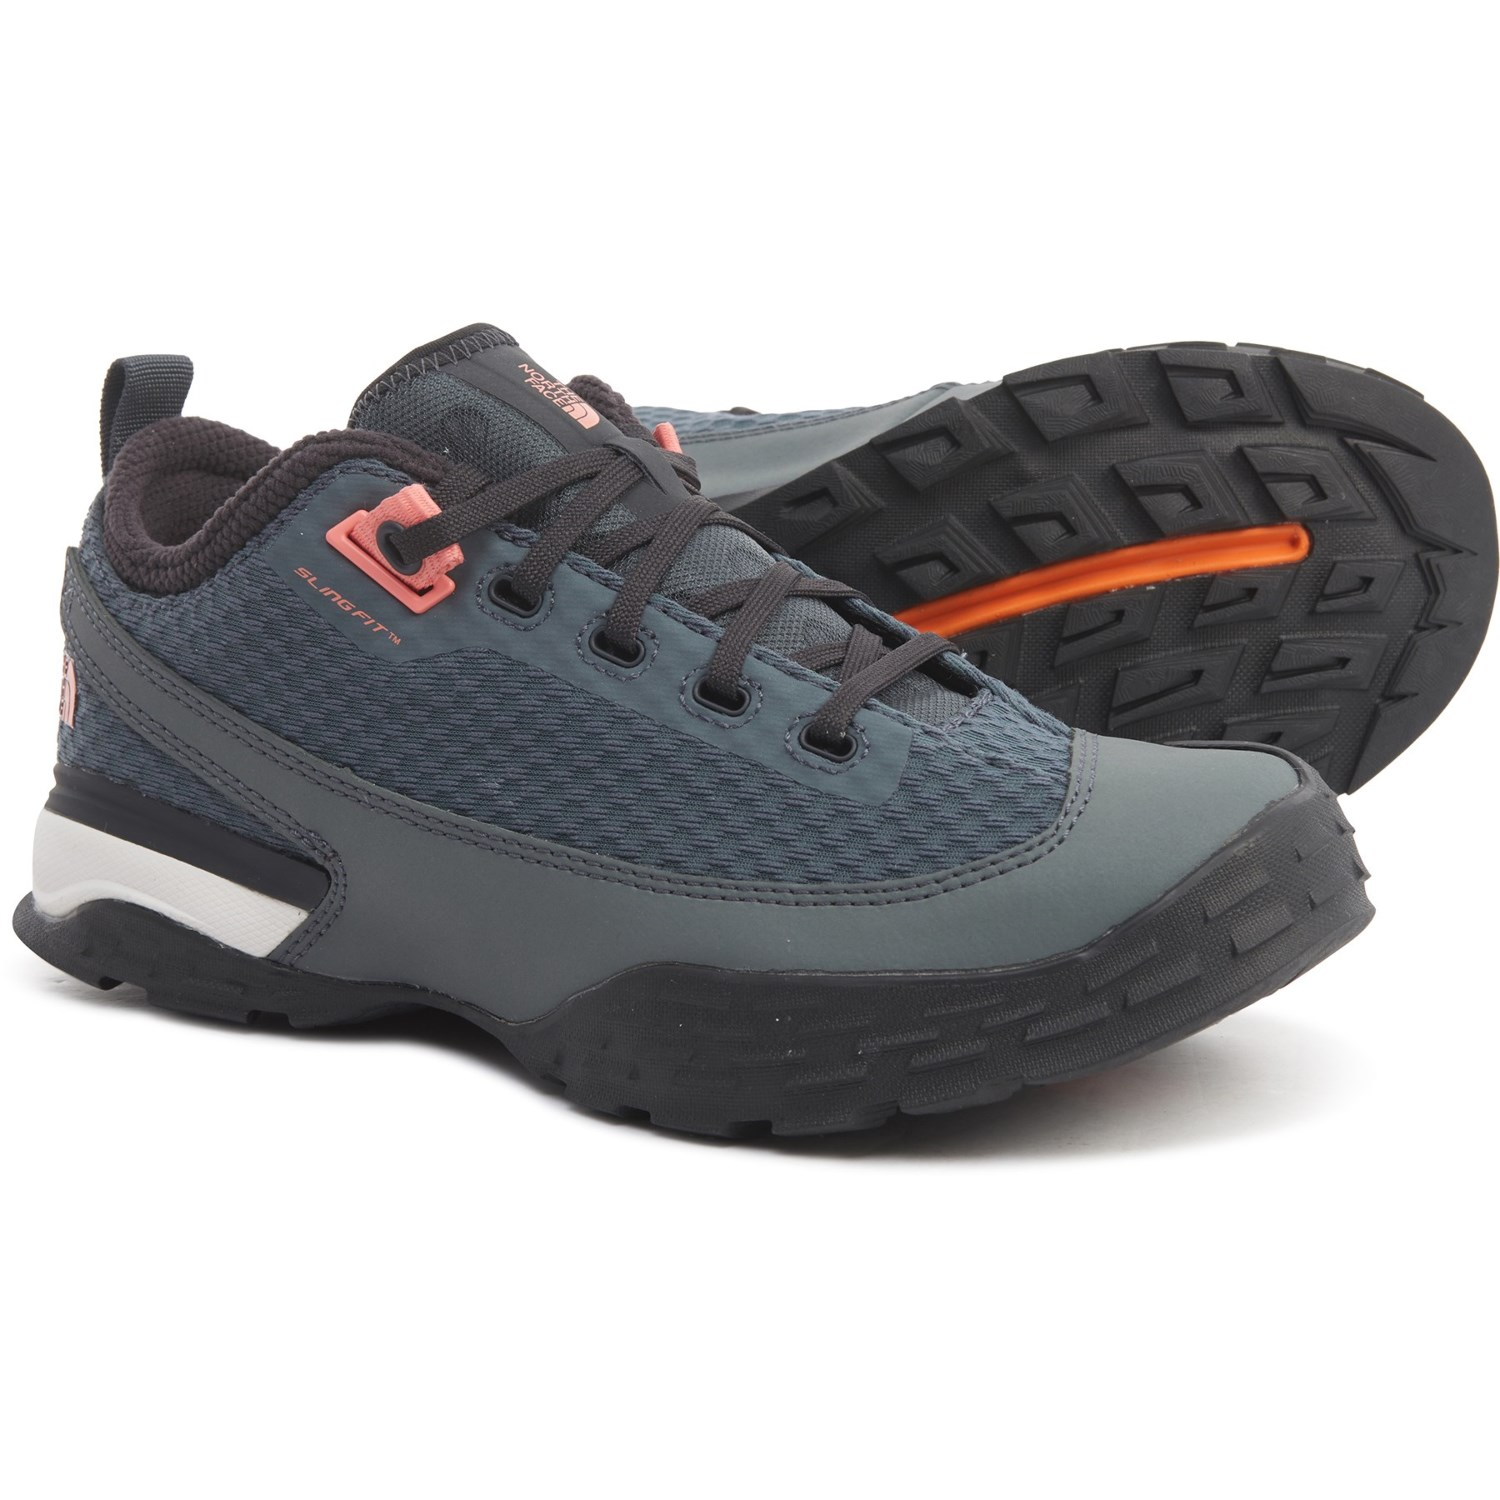 The North Face One Trail Hiking Shoes